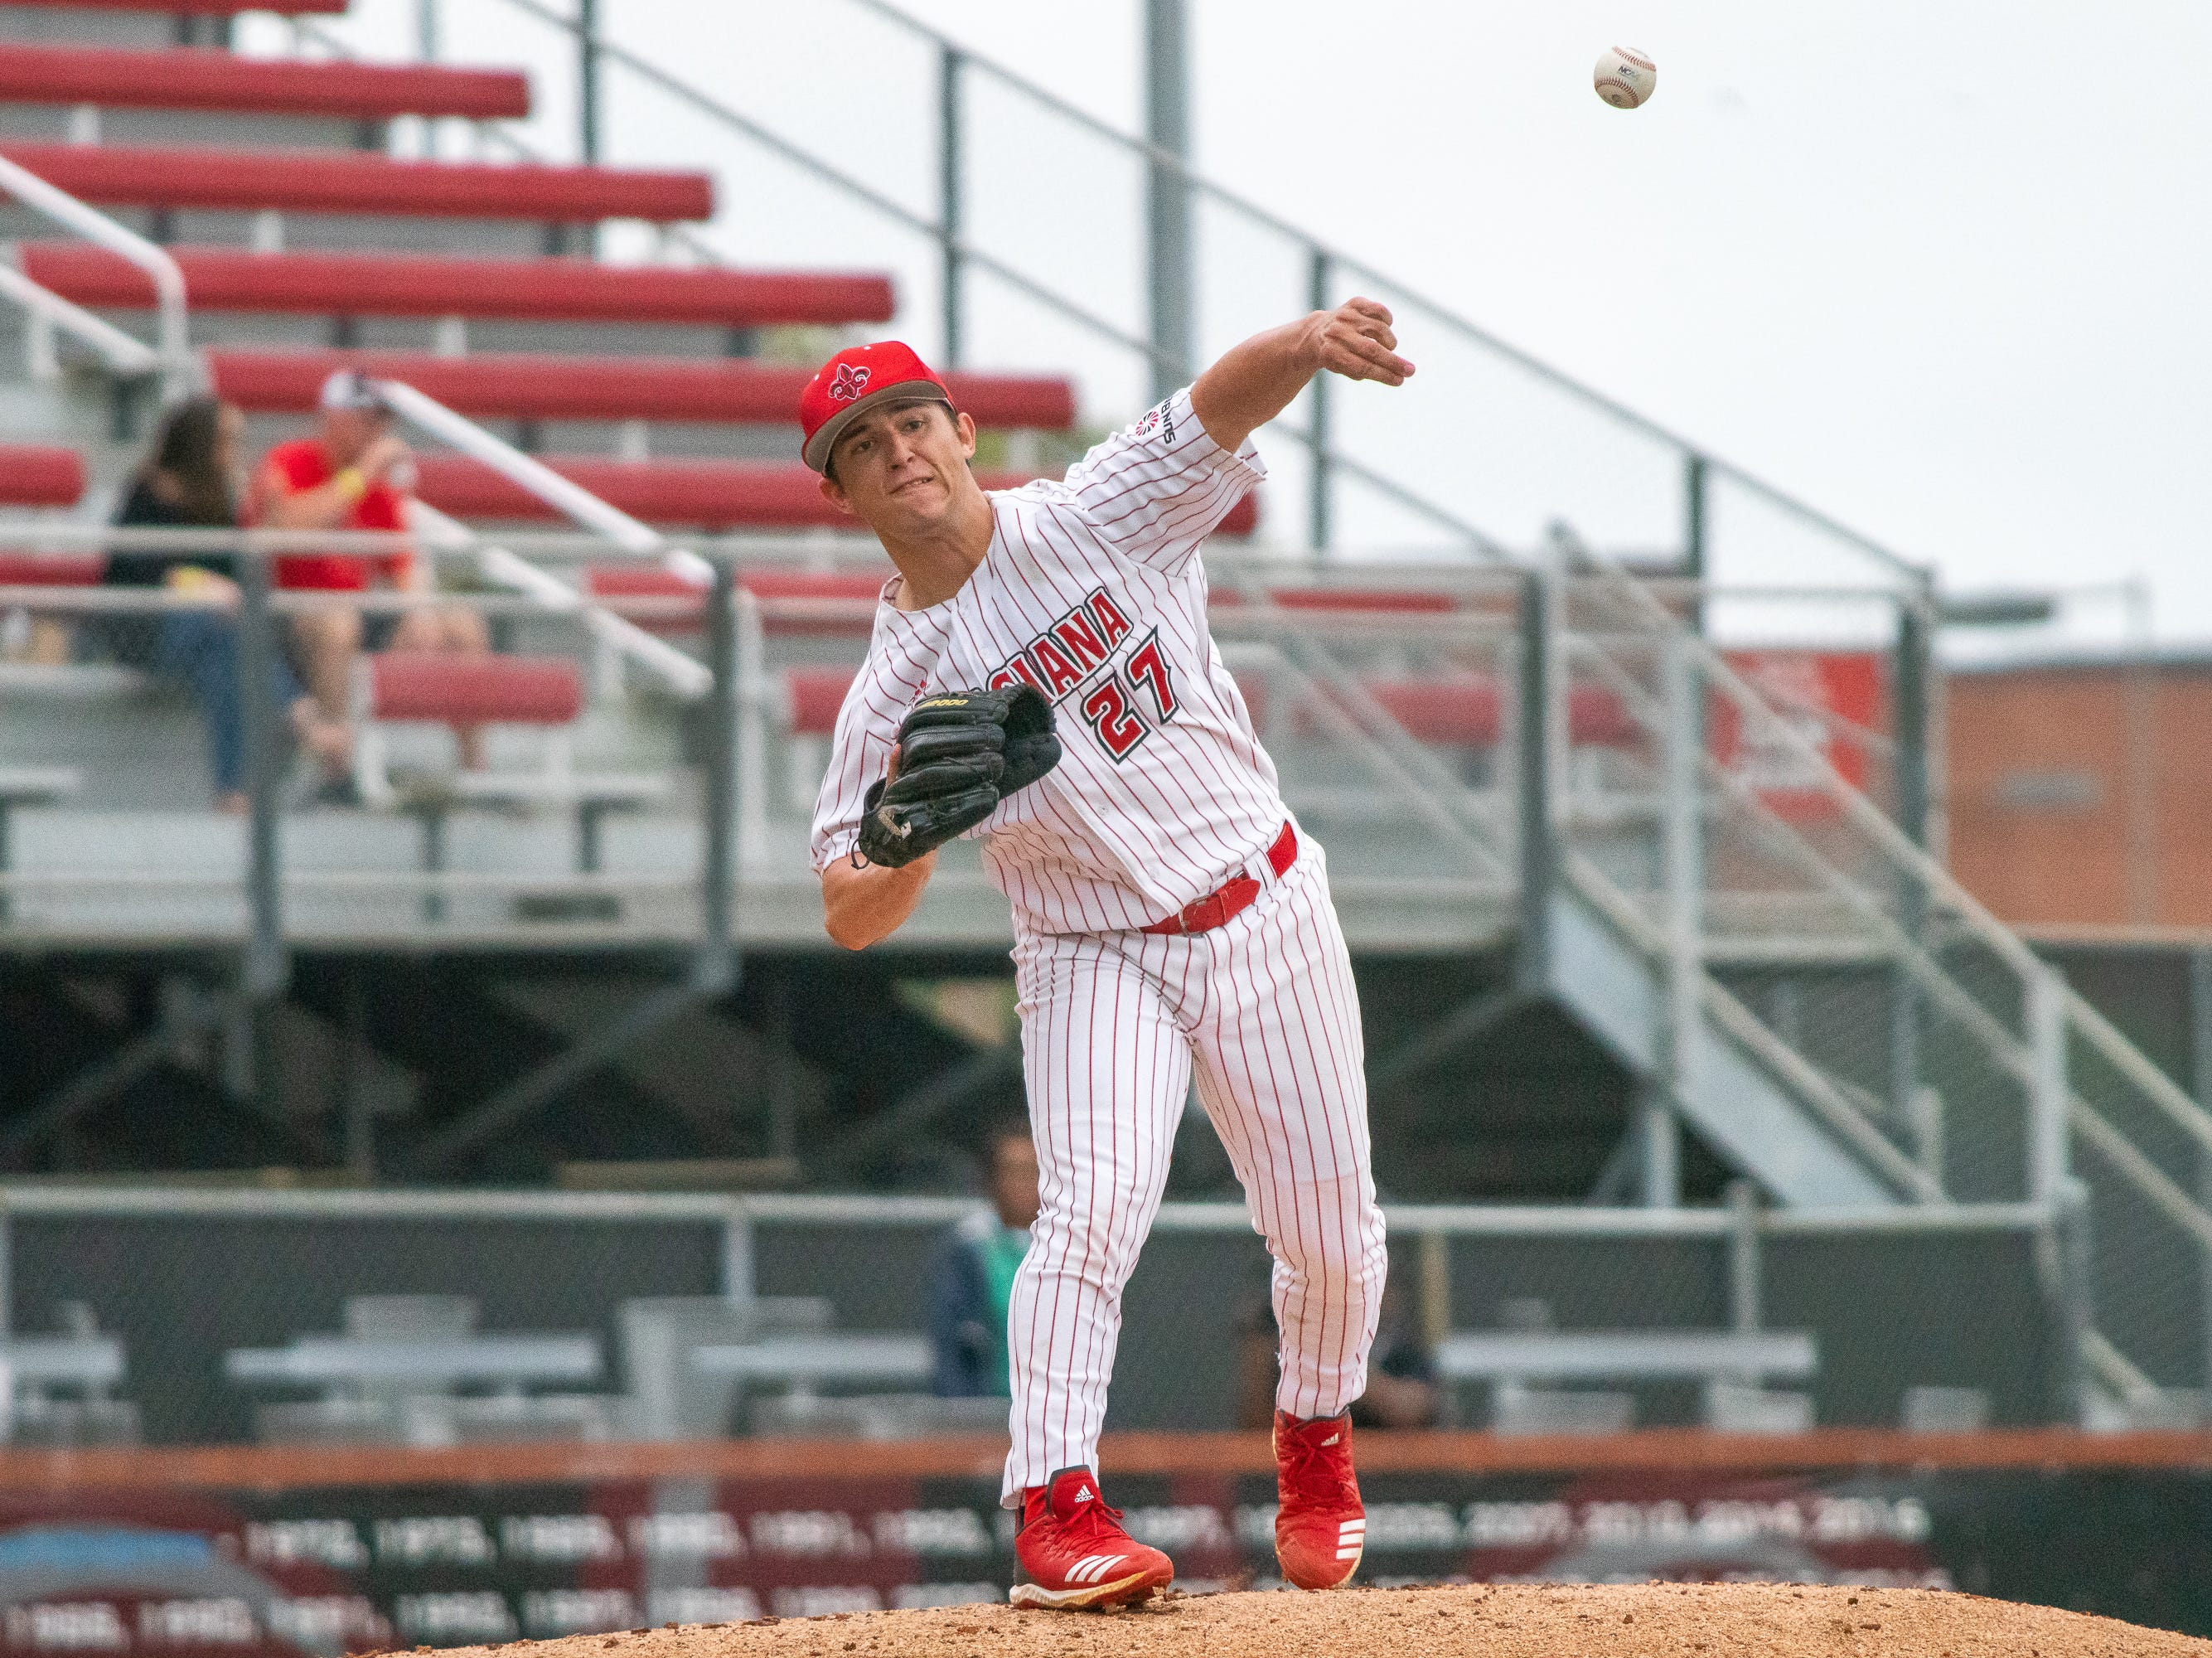 UL's pitcher Austin Perrin throws to first base as the Ragin' Cajuns take on the Loyola Marymount Lions at M.L. Tigue Moore Field on March 10, 2019.